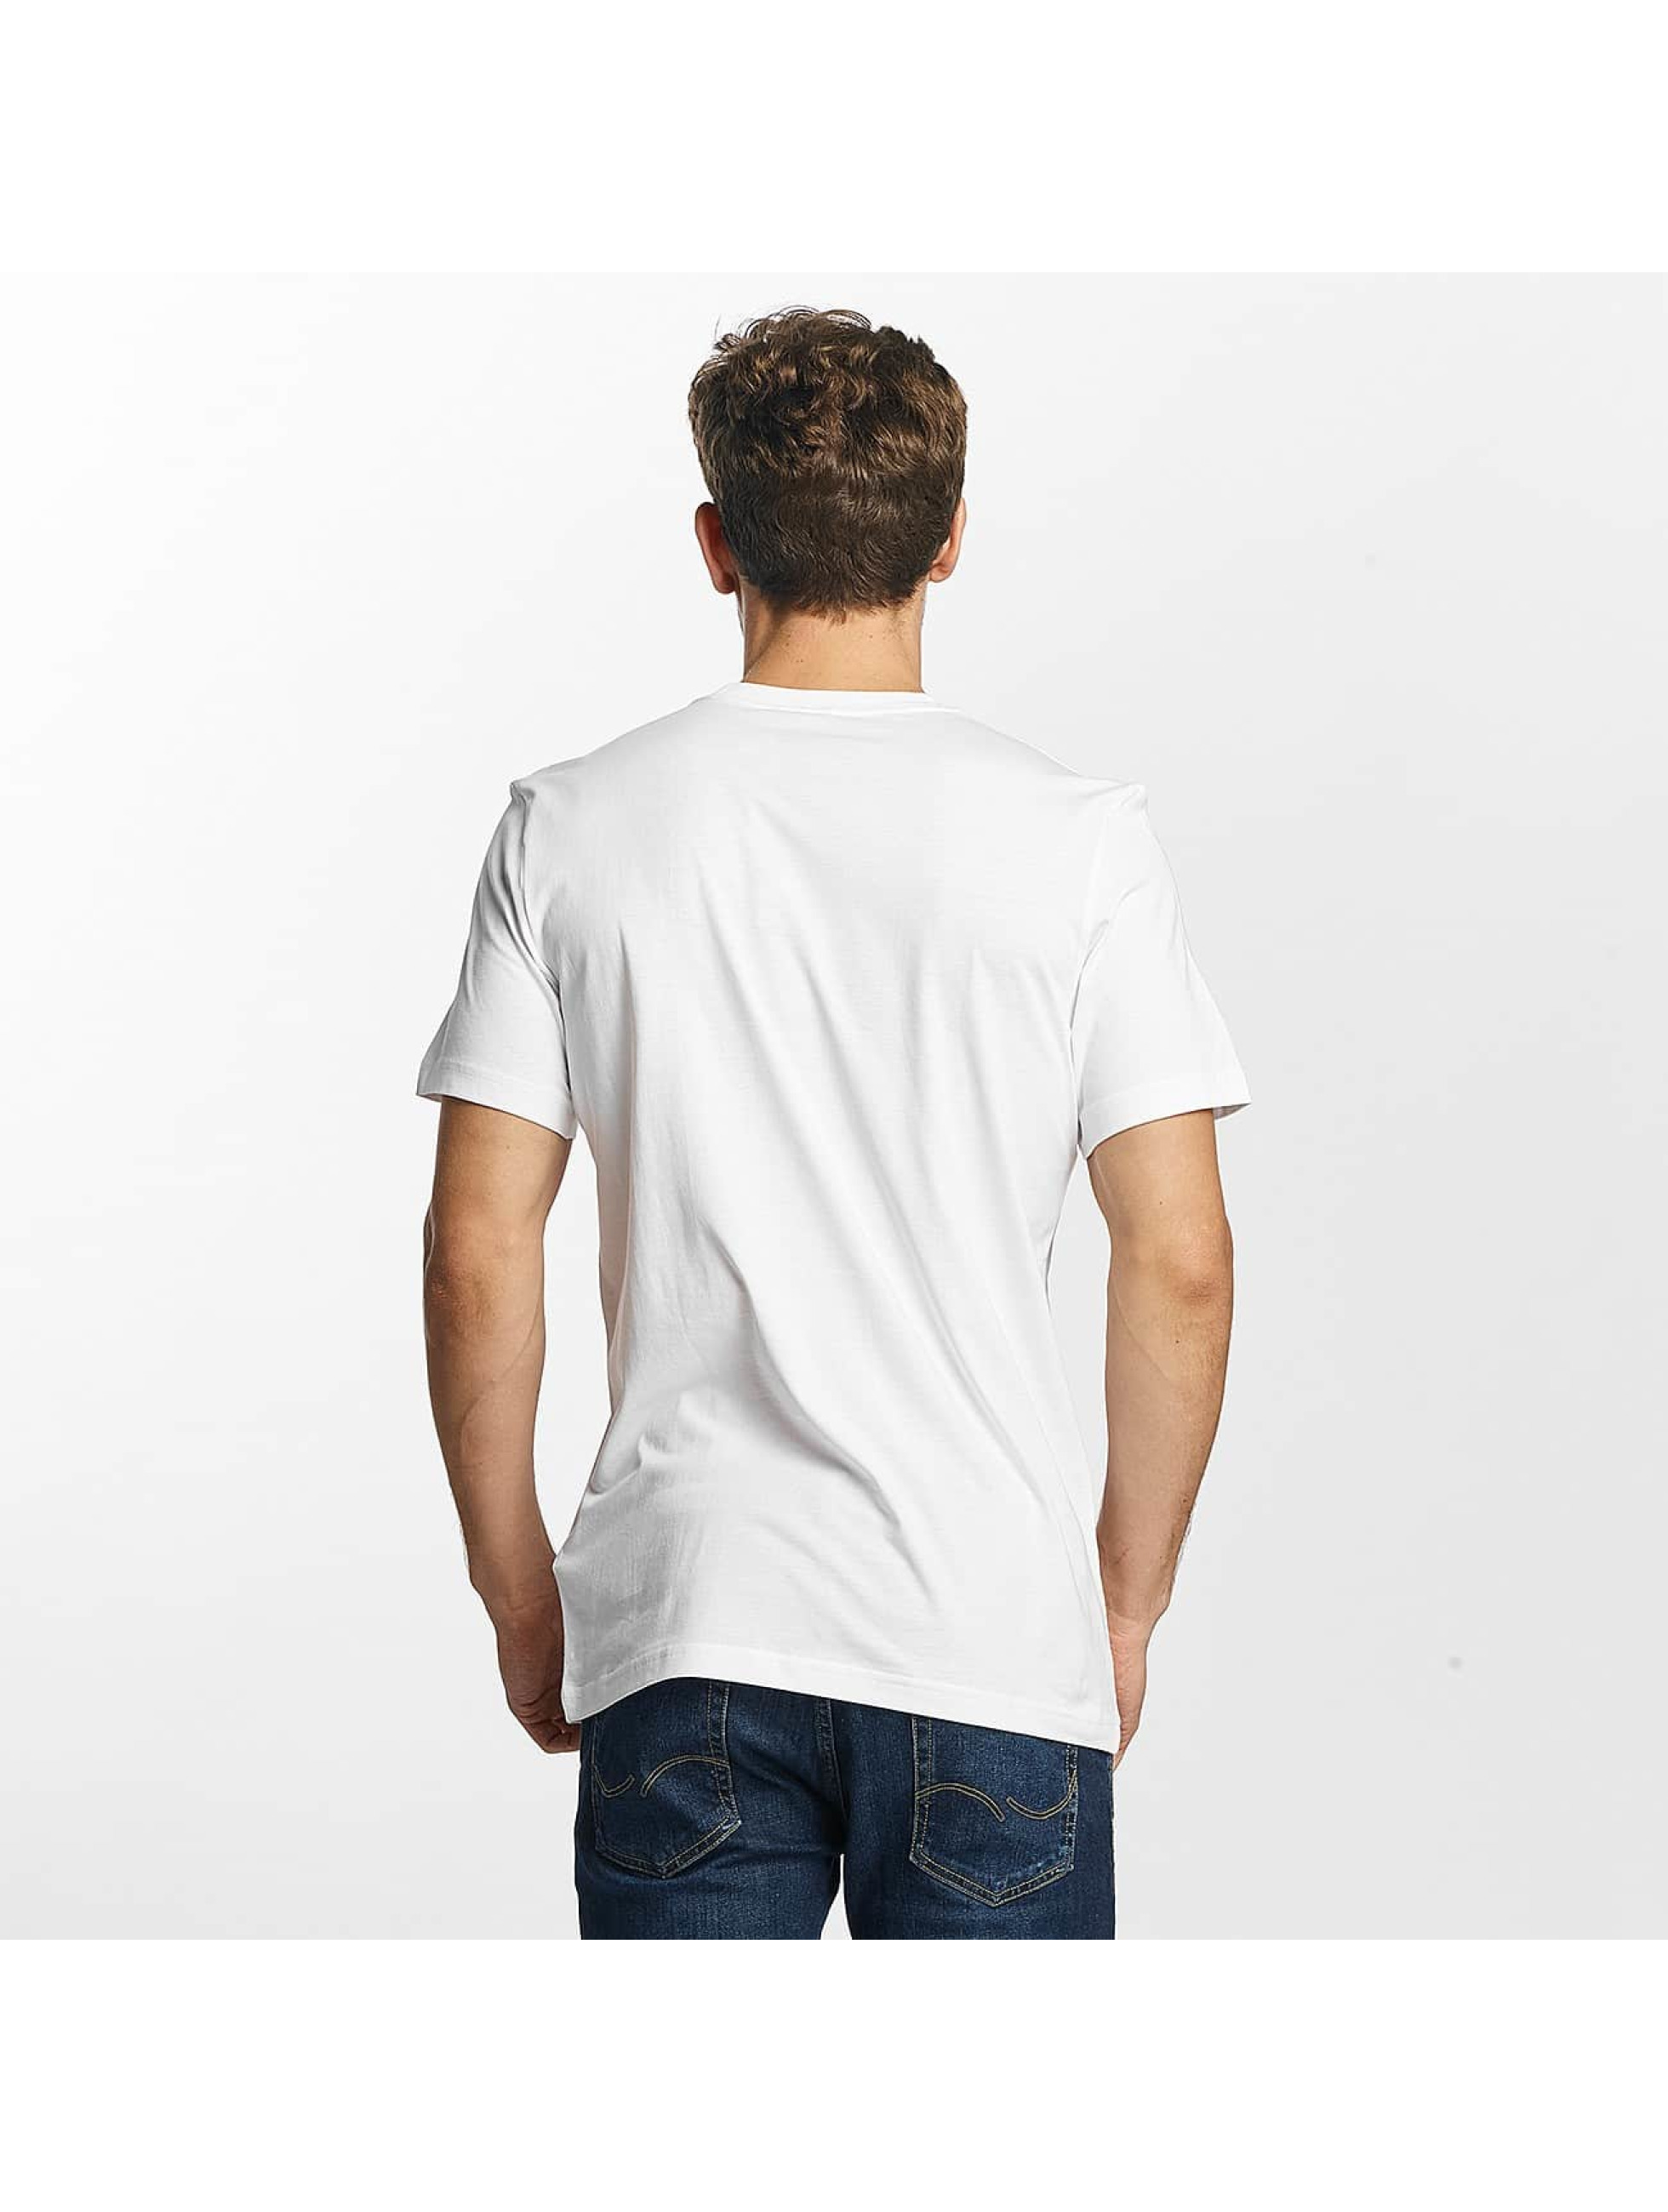 adidas originals T-Shirt Tongue Label 1 white